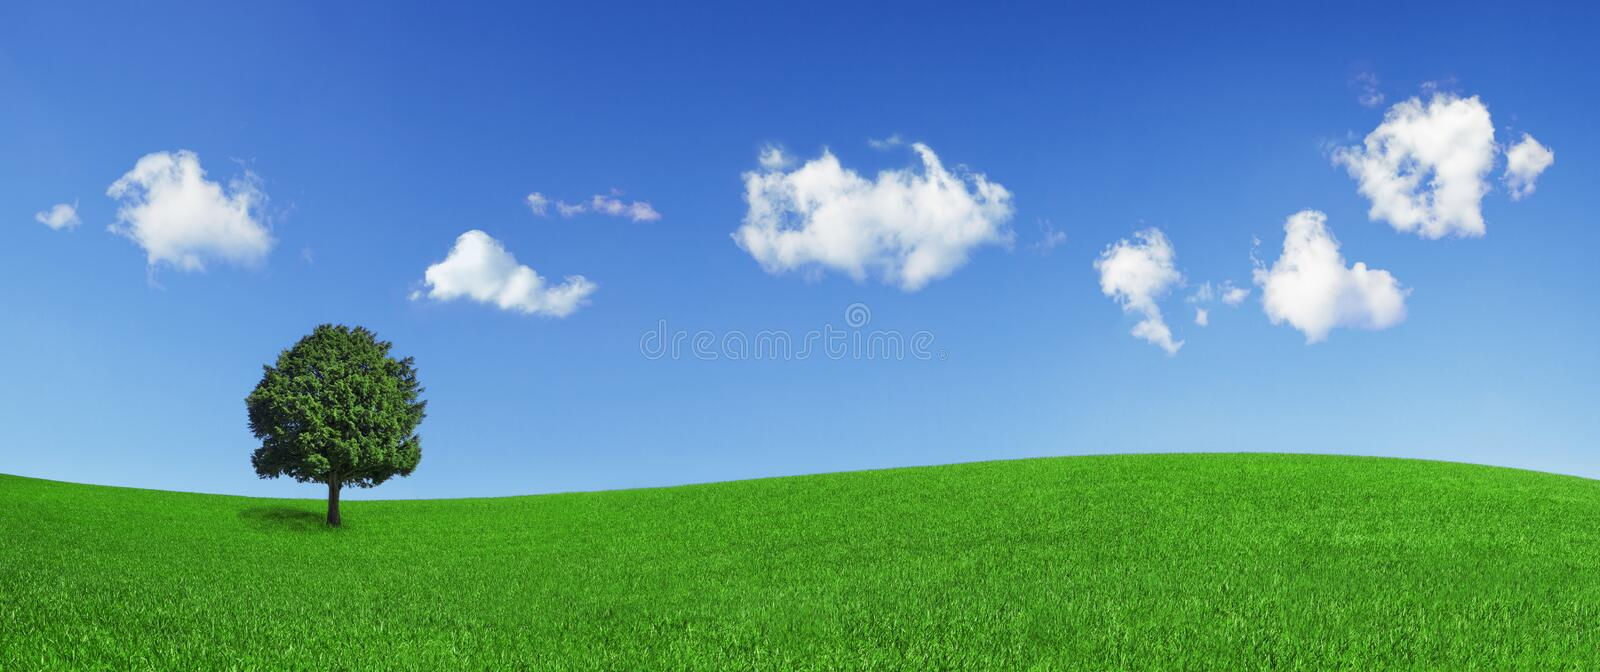 Lonely tree on a green field. Panoramic format of a lonely tree on a green field, on a clear blue sky with beautiful clouds royalty free stock photo